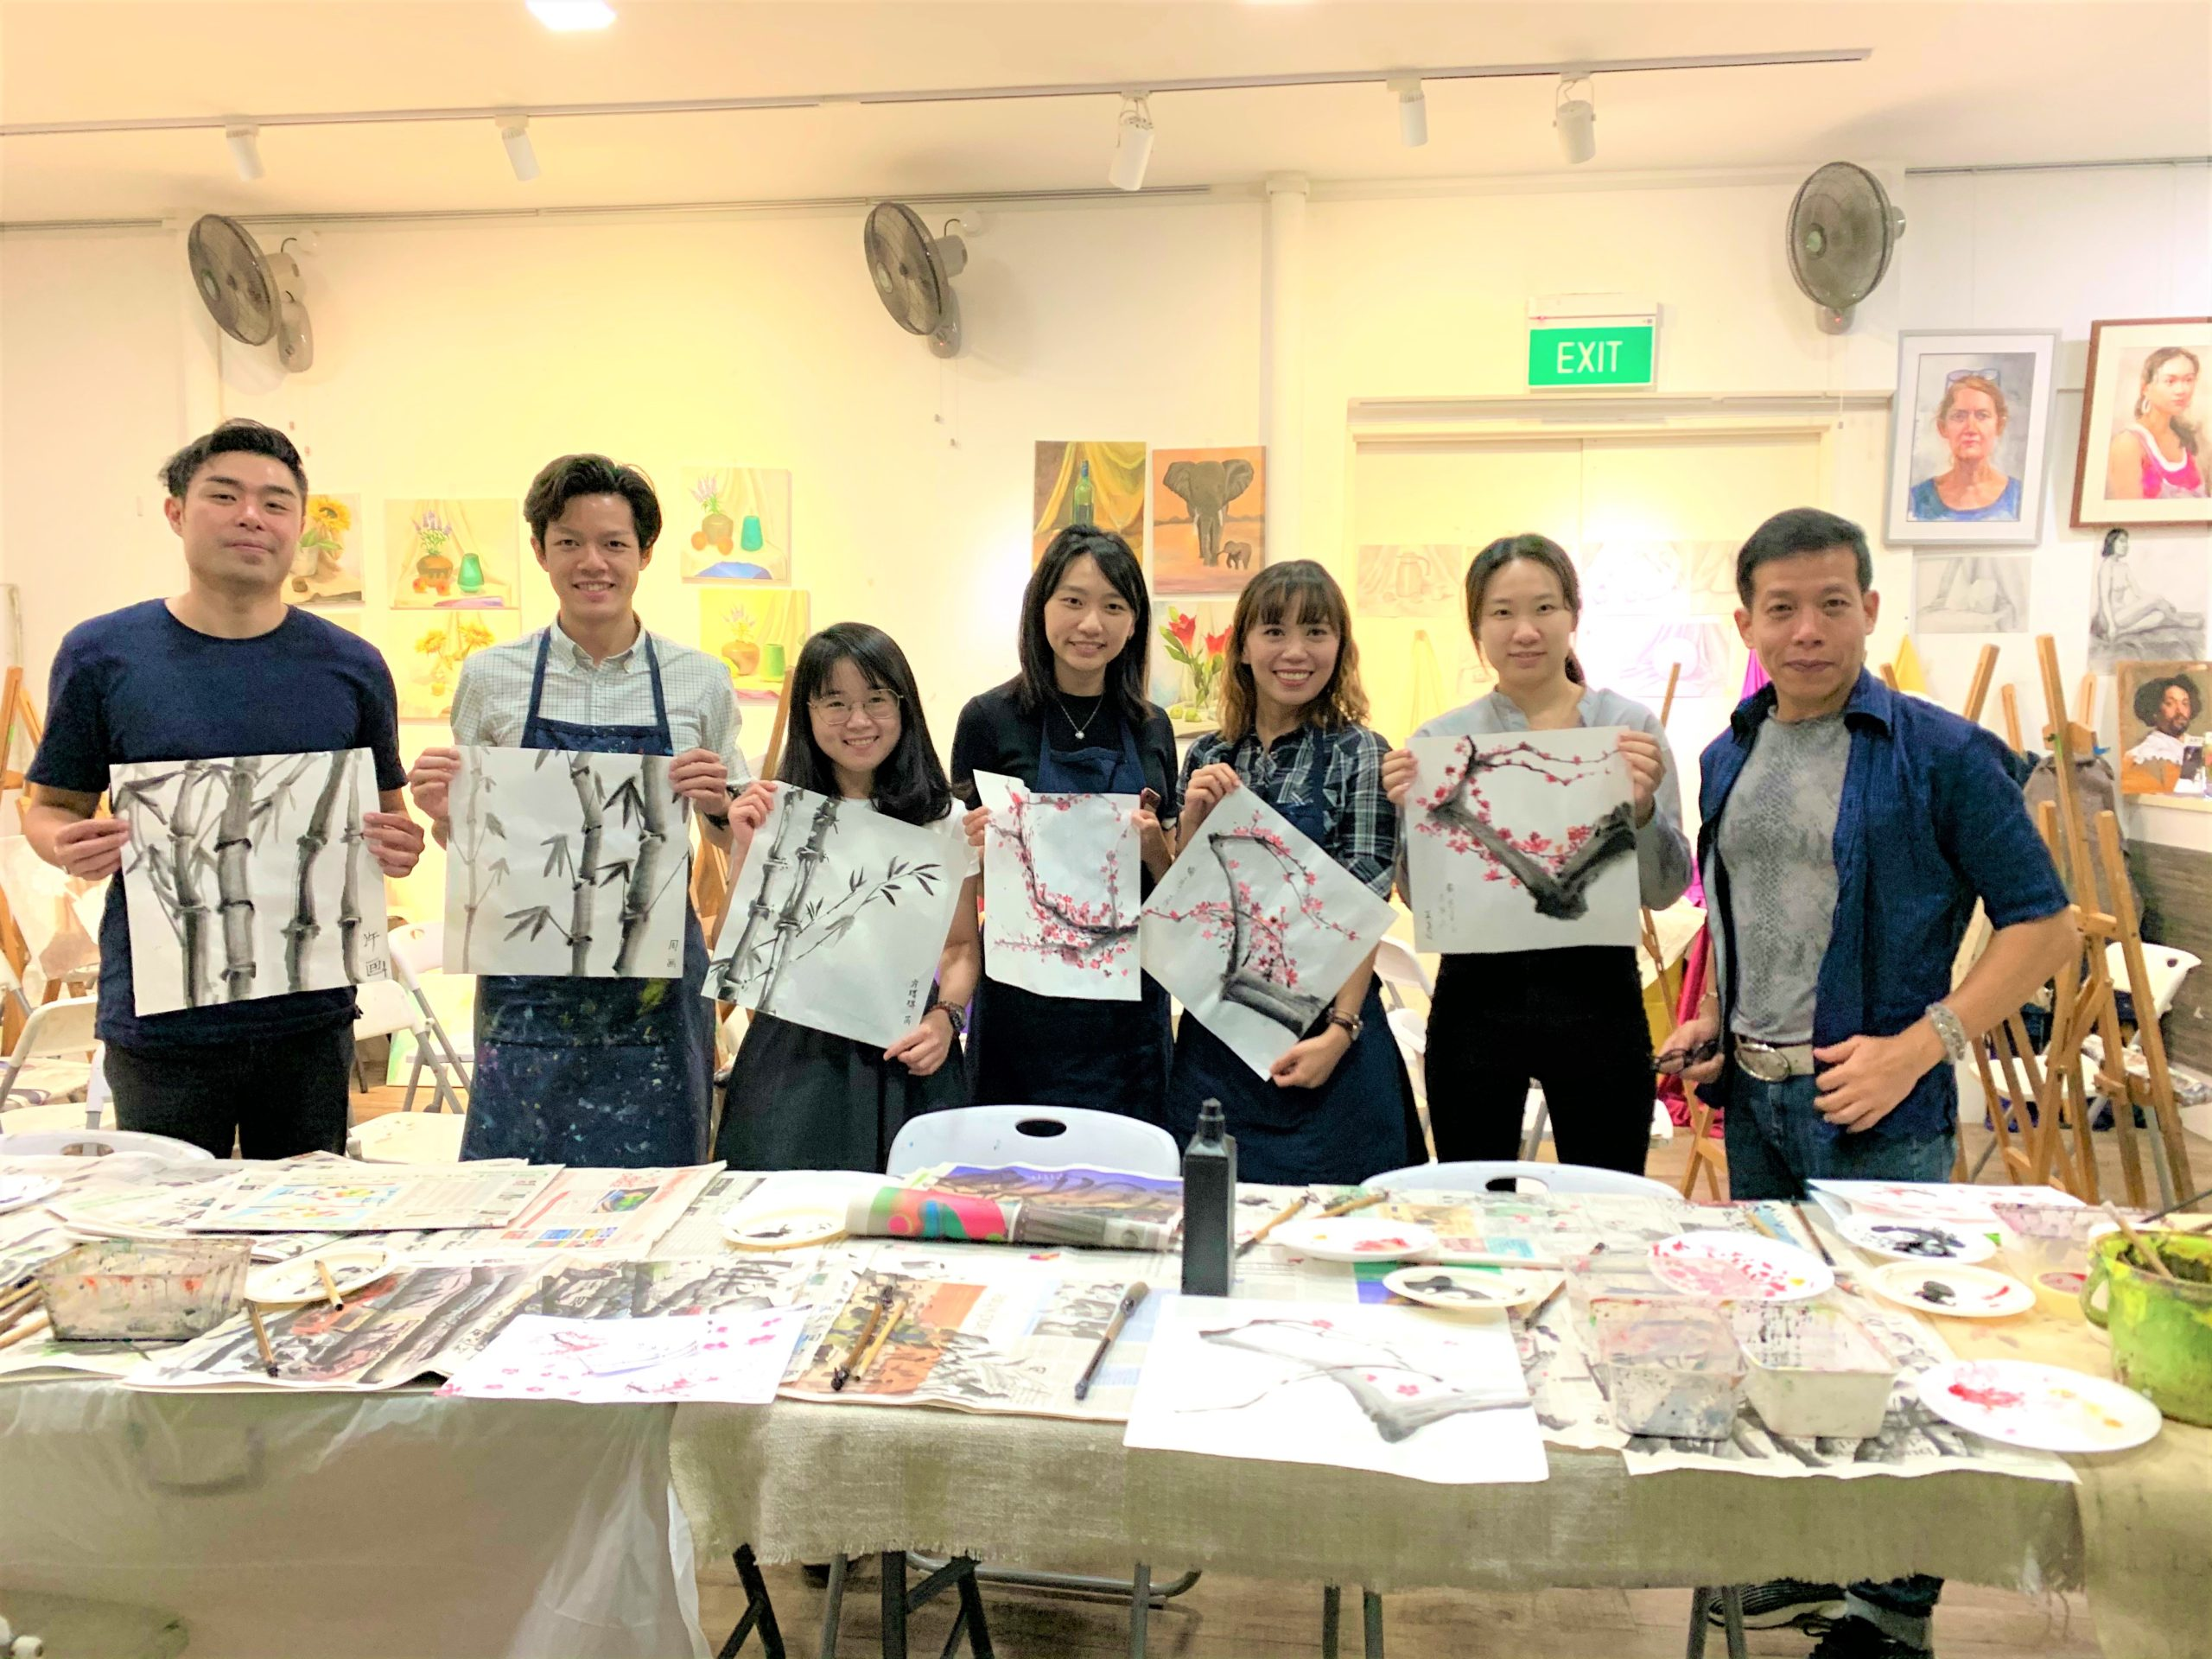 Attending first Chinese ink painting class and it's awesome at Visual Arts Centre